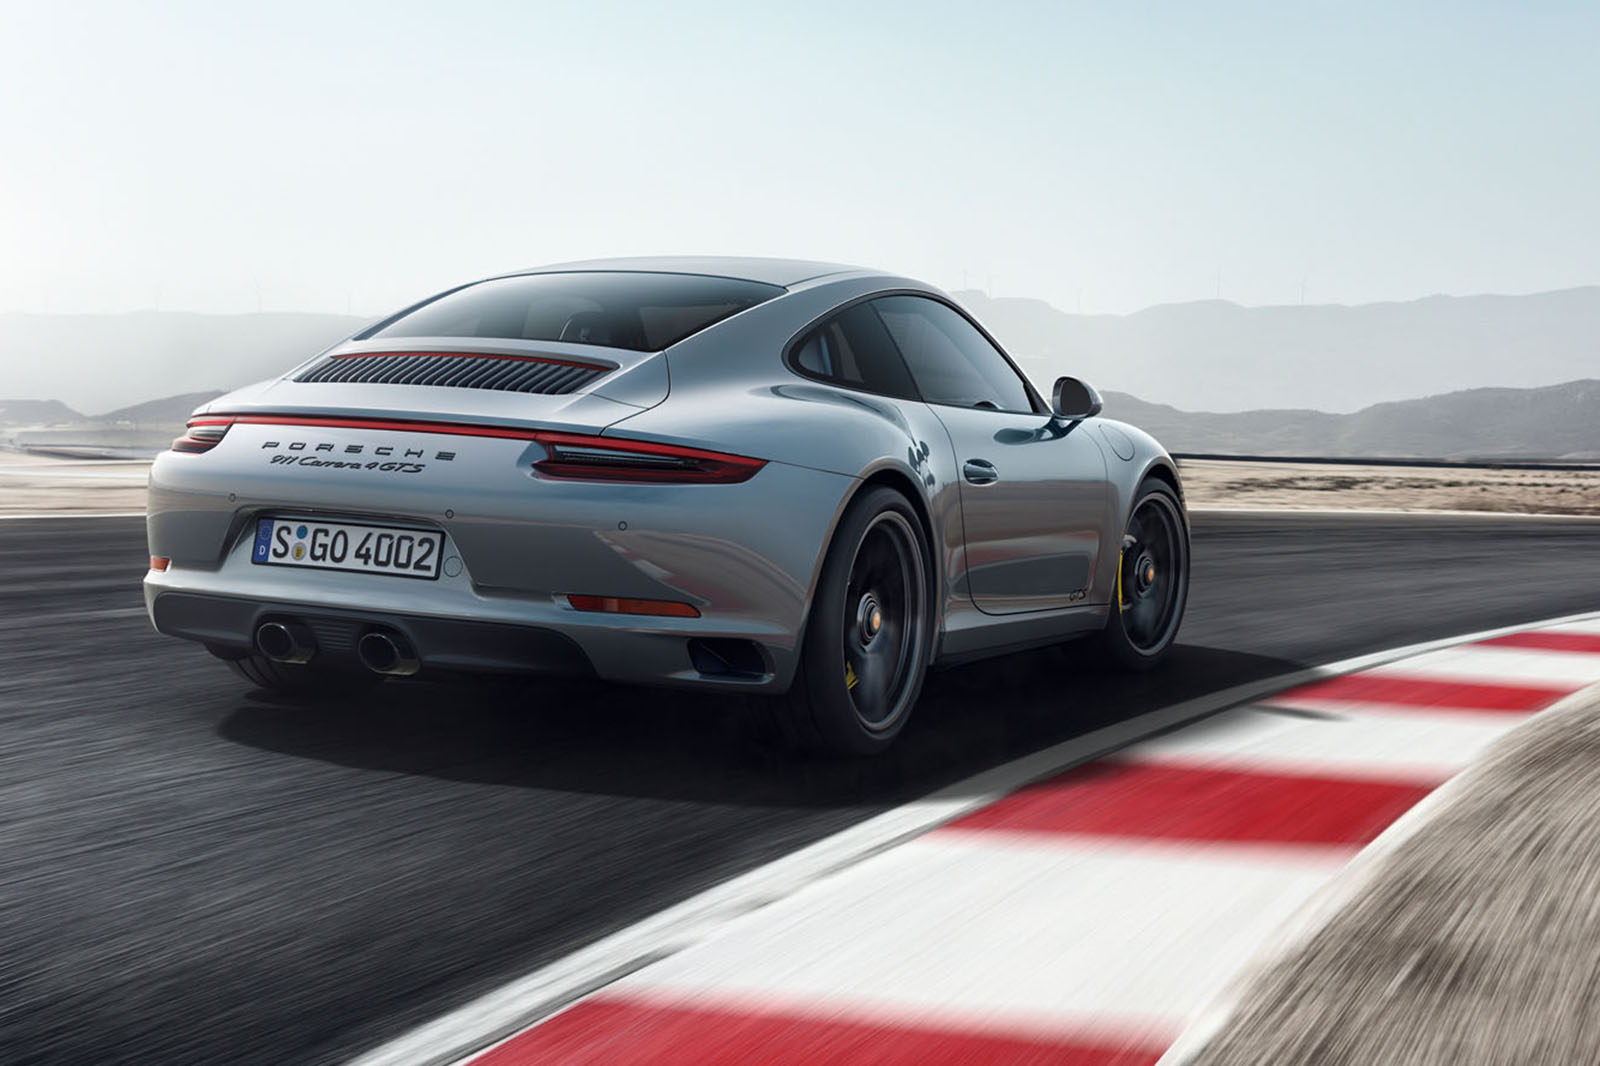 Porsche 911 gt3 rs review 2017 autocar - As Well As Taking Top Speed Honours The Dual Clutch Pdk Equipped Version Of The 911 Carrera Gts Also Boasts The Lowest Consumption And Emissions Of The New